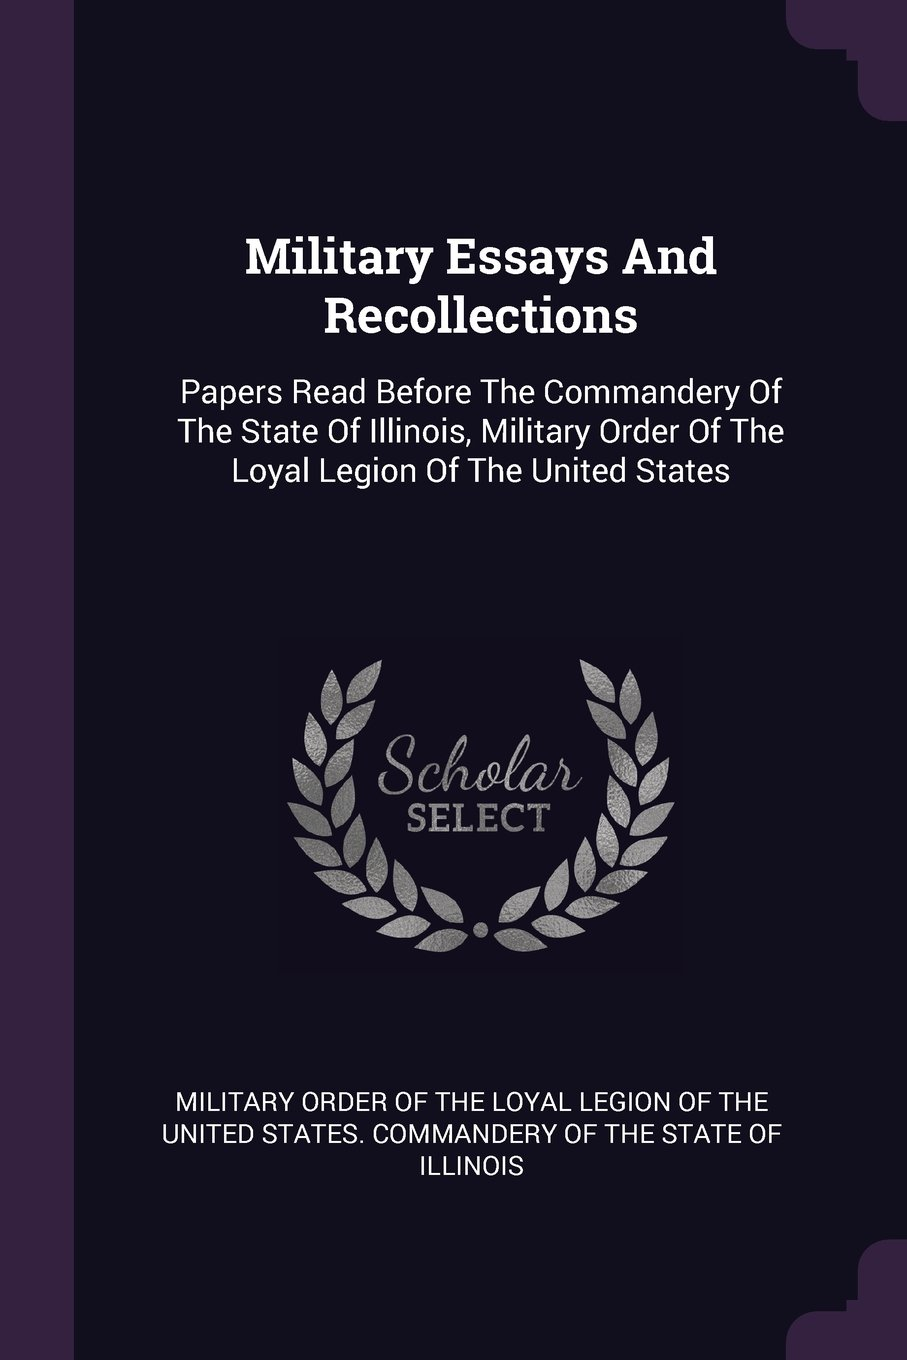 Health Education Essay Military Essays And Recollections Papers Read Before The Commandery Of The  State Of Illinois Military Order Of The Loyal Legion Of The United States   Sample Of Synthesis Essay also Business Format Essay Military Essays And Recollections Papers Read Before The Commandery  How To Start A Science Essay